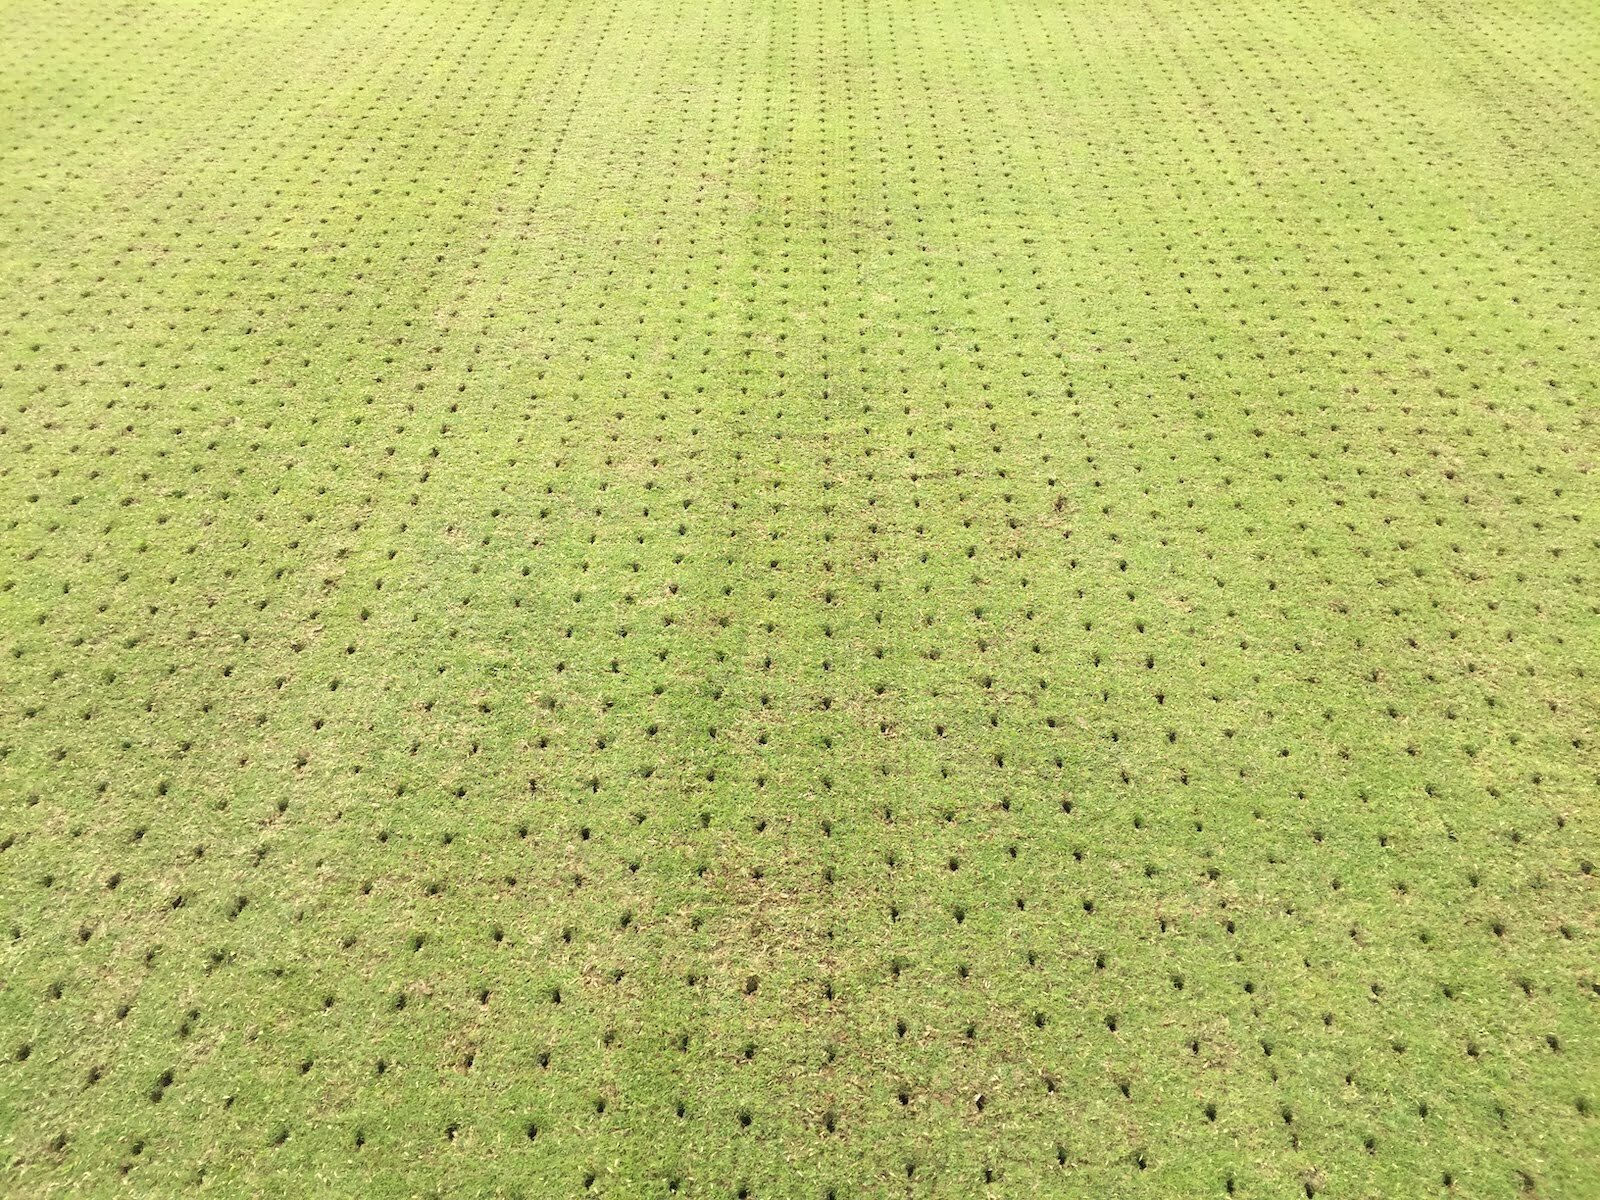 Spiked Aeration on a UK lawn